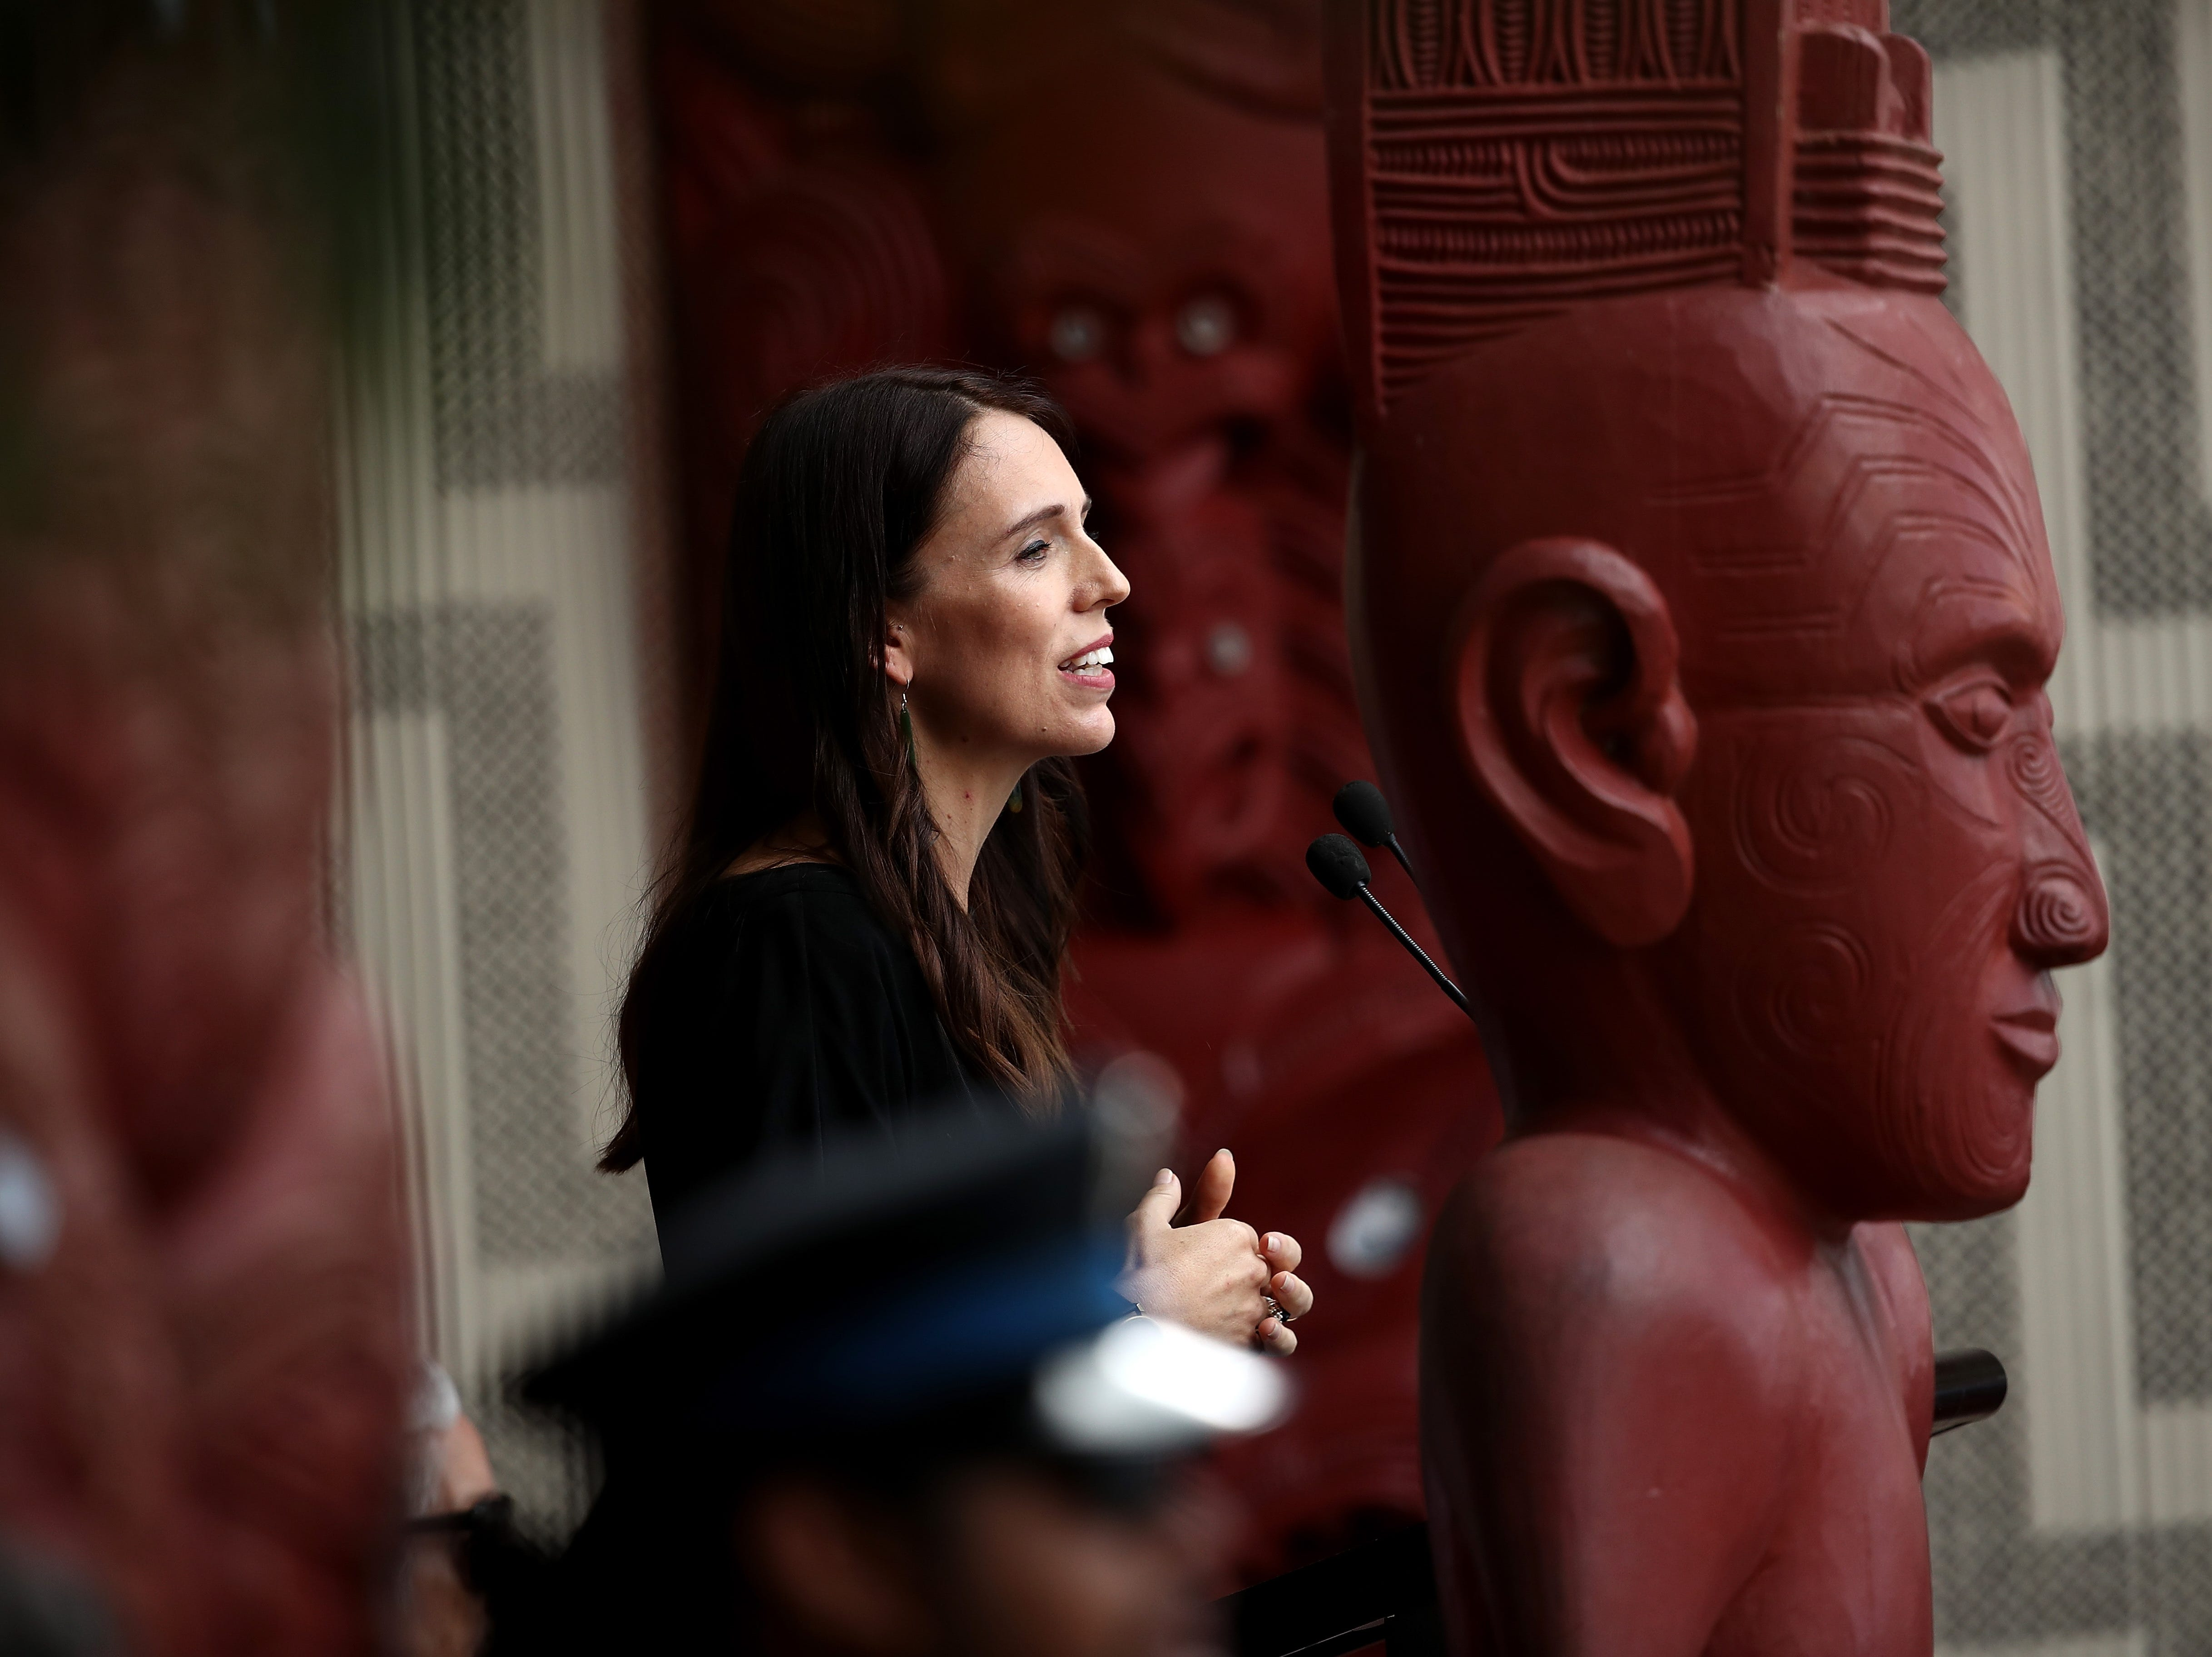 New Zealand Prime Minister Jacinda Ardern speaks on the veranda of Te Whare Runanga on the Waitangi Treaty Grounds on Feb. 5, 2018 in Waitangi, New Zealand. The Waitangi Day national holiday celebrates the signing of the treaty of Waitangi on February 6, 1840 by Maori chiefs and the British Crown, that granted the Maori people the rights of British Citizens and ownership of their lands and other properties.